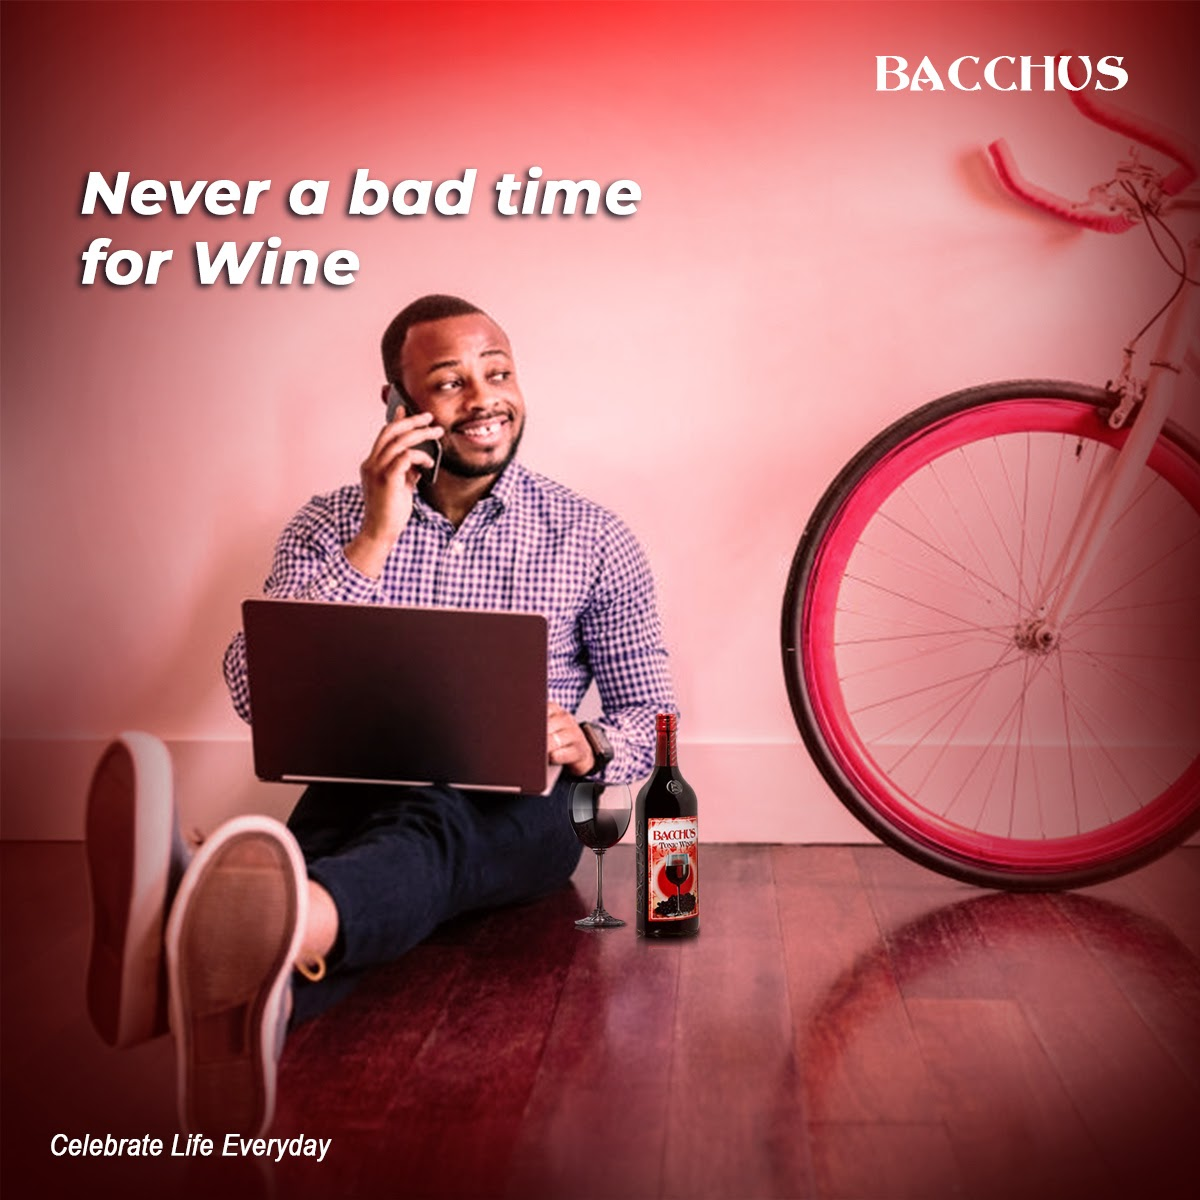 Whether at home, a bar or at a quiet intimate gathering with friends, it's never a bad time for wine  Head over to the store and get yours for the weekend. #BacchusTonicWine #tonicwine #Relationships  #SpecialMoments #Winepic.twitter.com/HfT18nNvRm